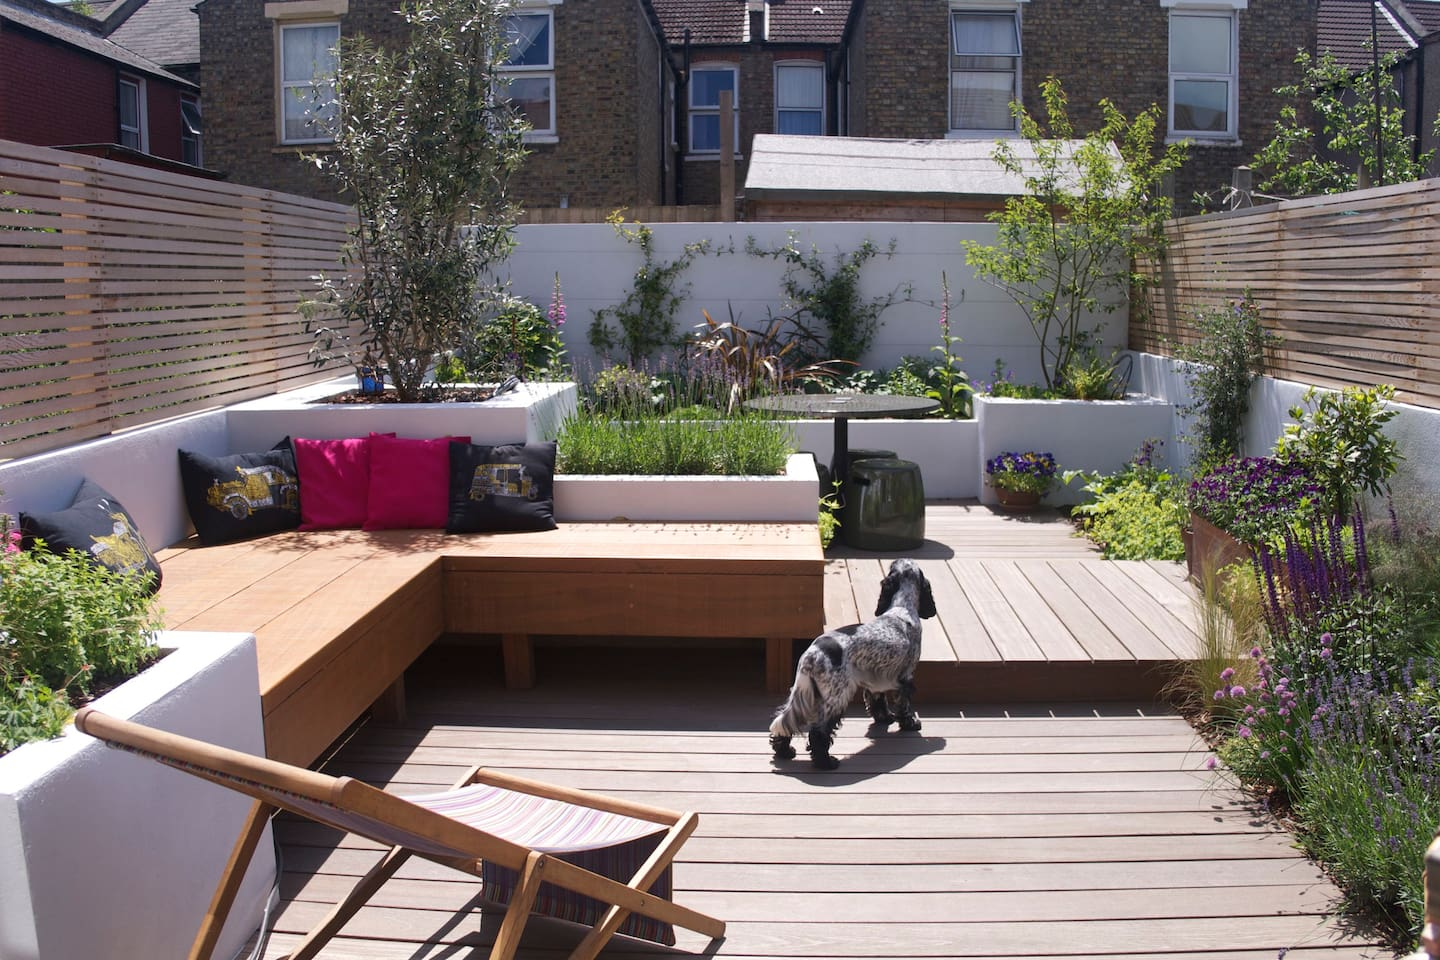 Sociable south-facing garden, great for chilling out in after a day visiting London's sites.